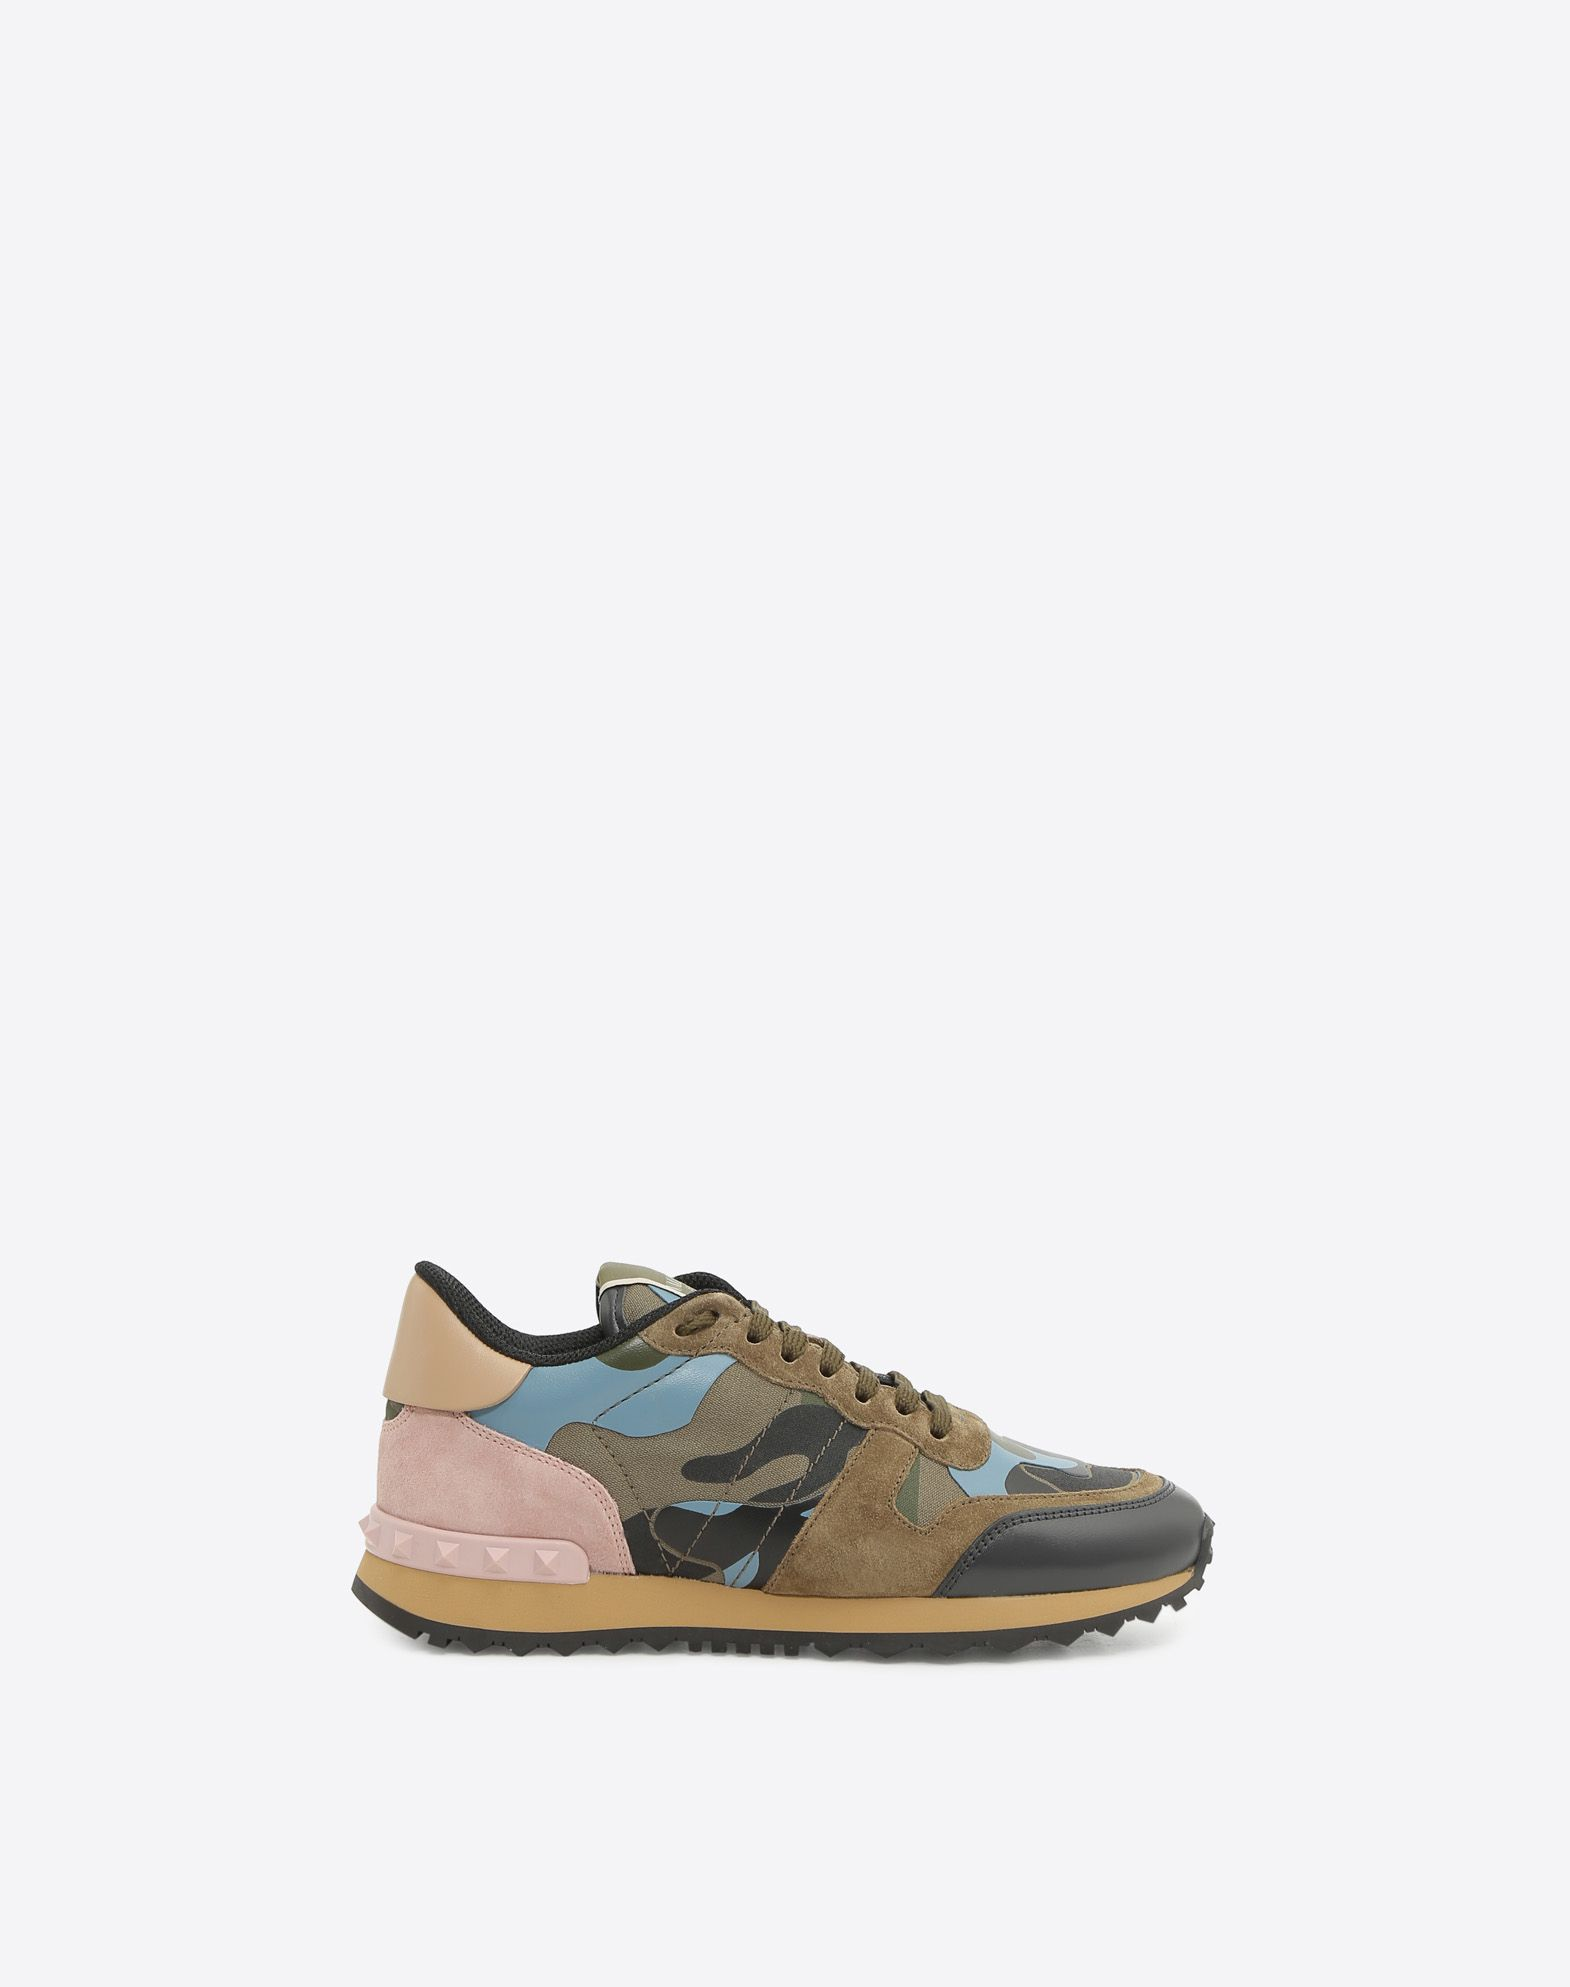 free shipping high quality with credit card cheap price Valentino camouflage sneakers latest sale online quality free shipping low price discount visit new ULTElNP